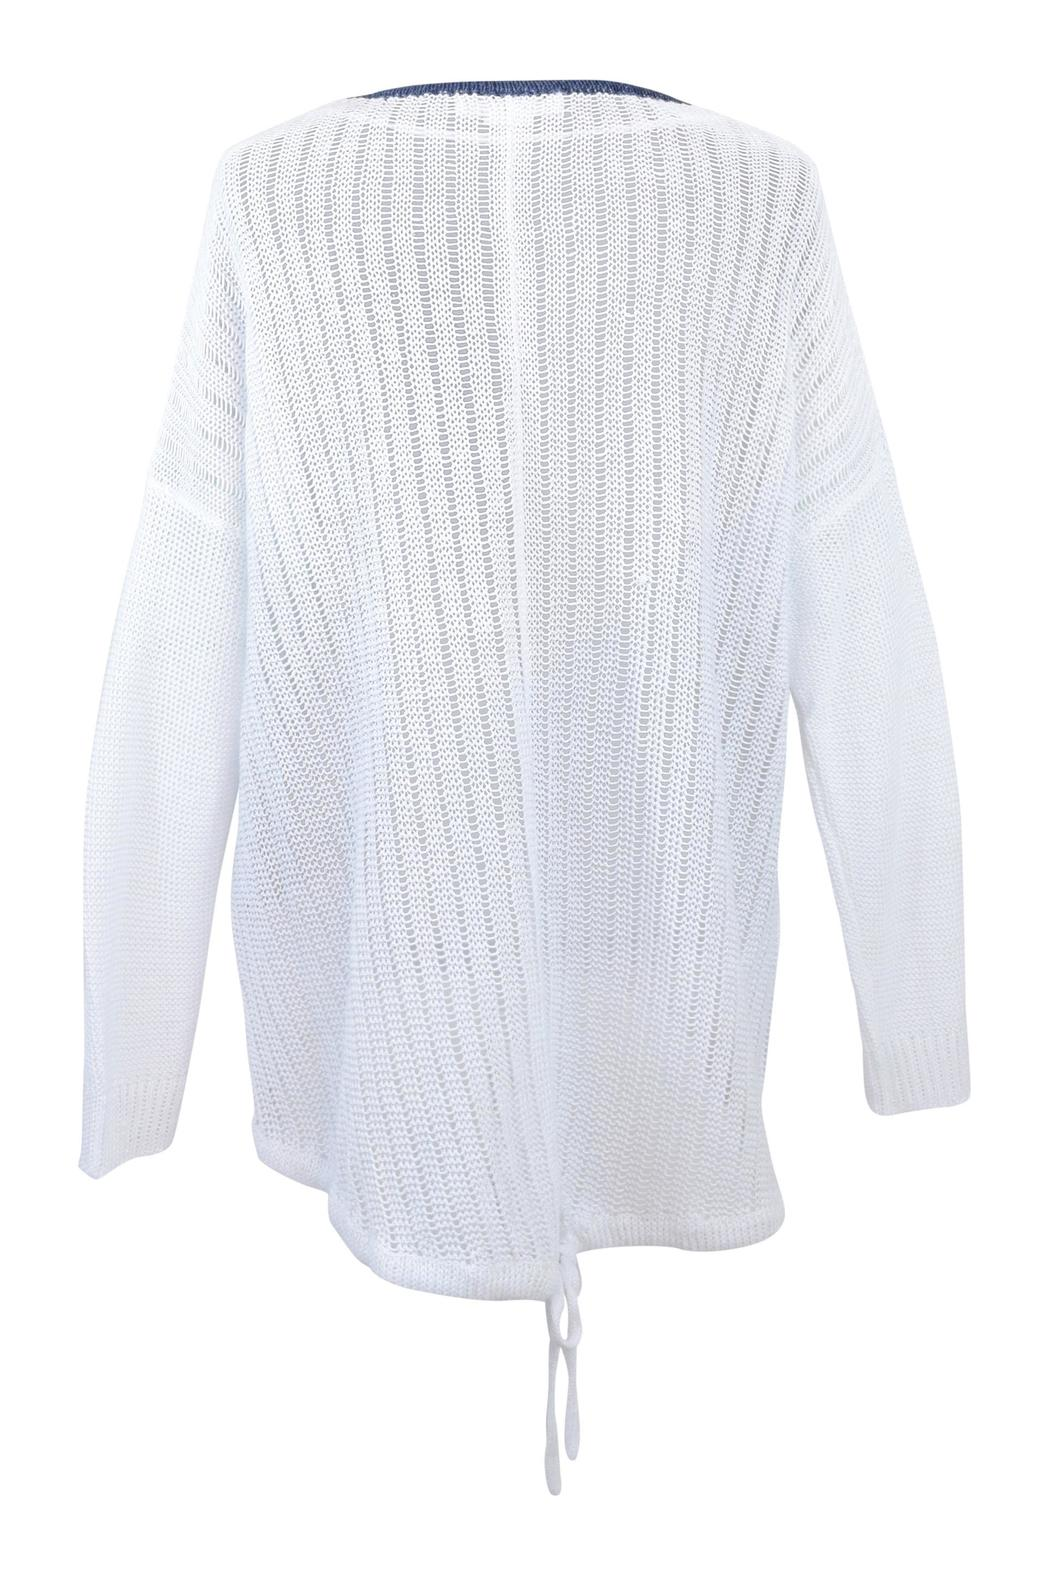 Charli White Linen Sweater - Front Full Image